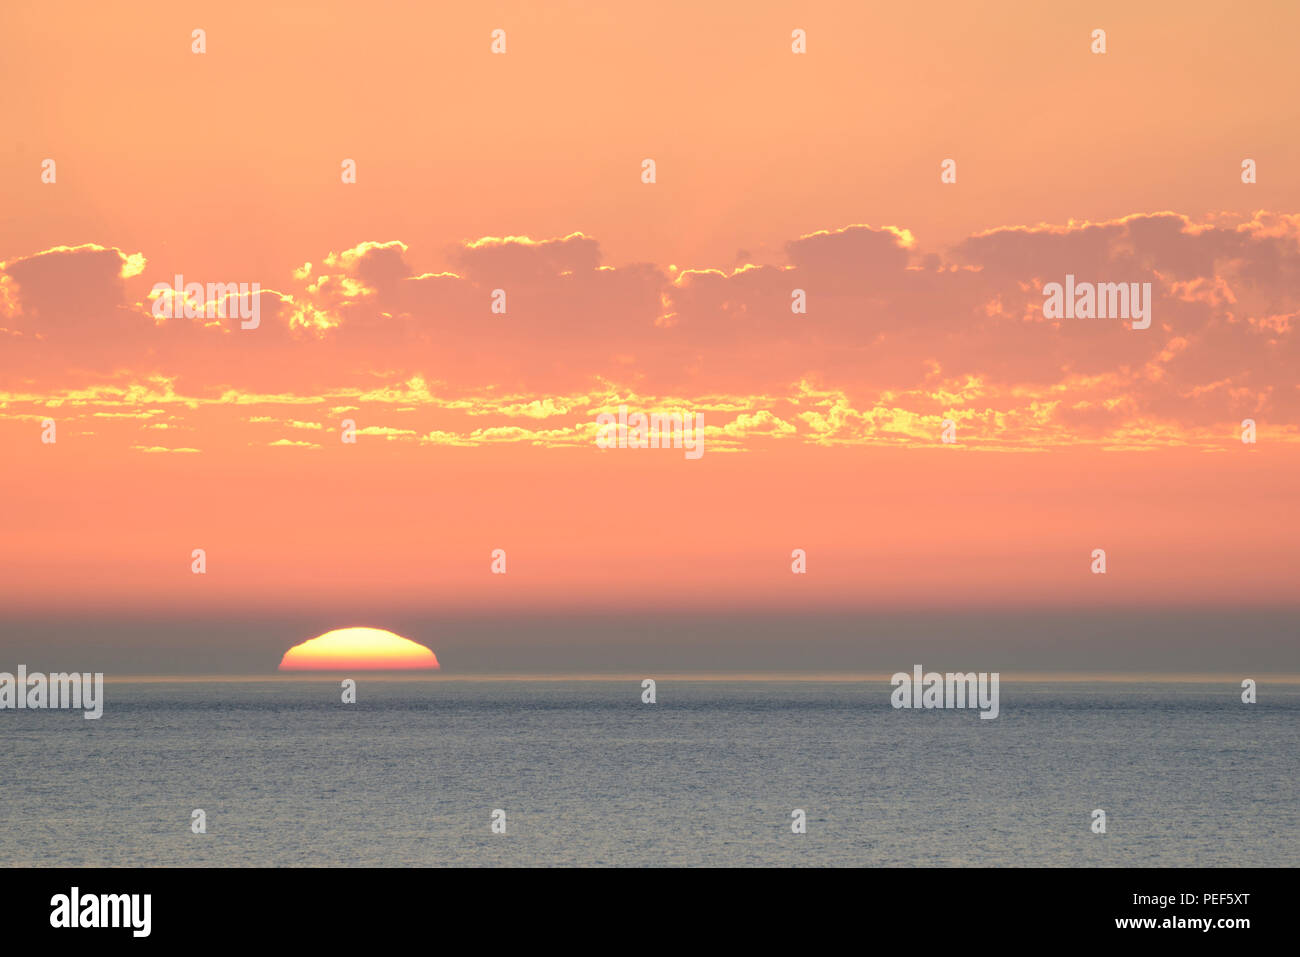 Sunset with clouds over the North Sea, sun sinks in the sea, Norderney, East Frisian Islands, Lower Saxony, Germany - Stock Image